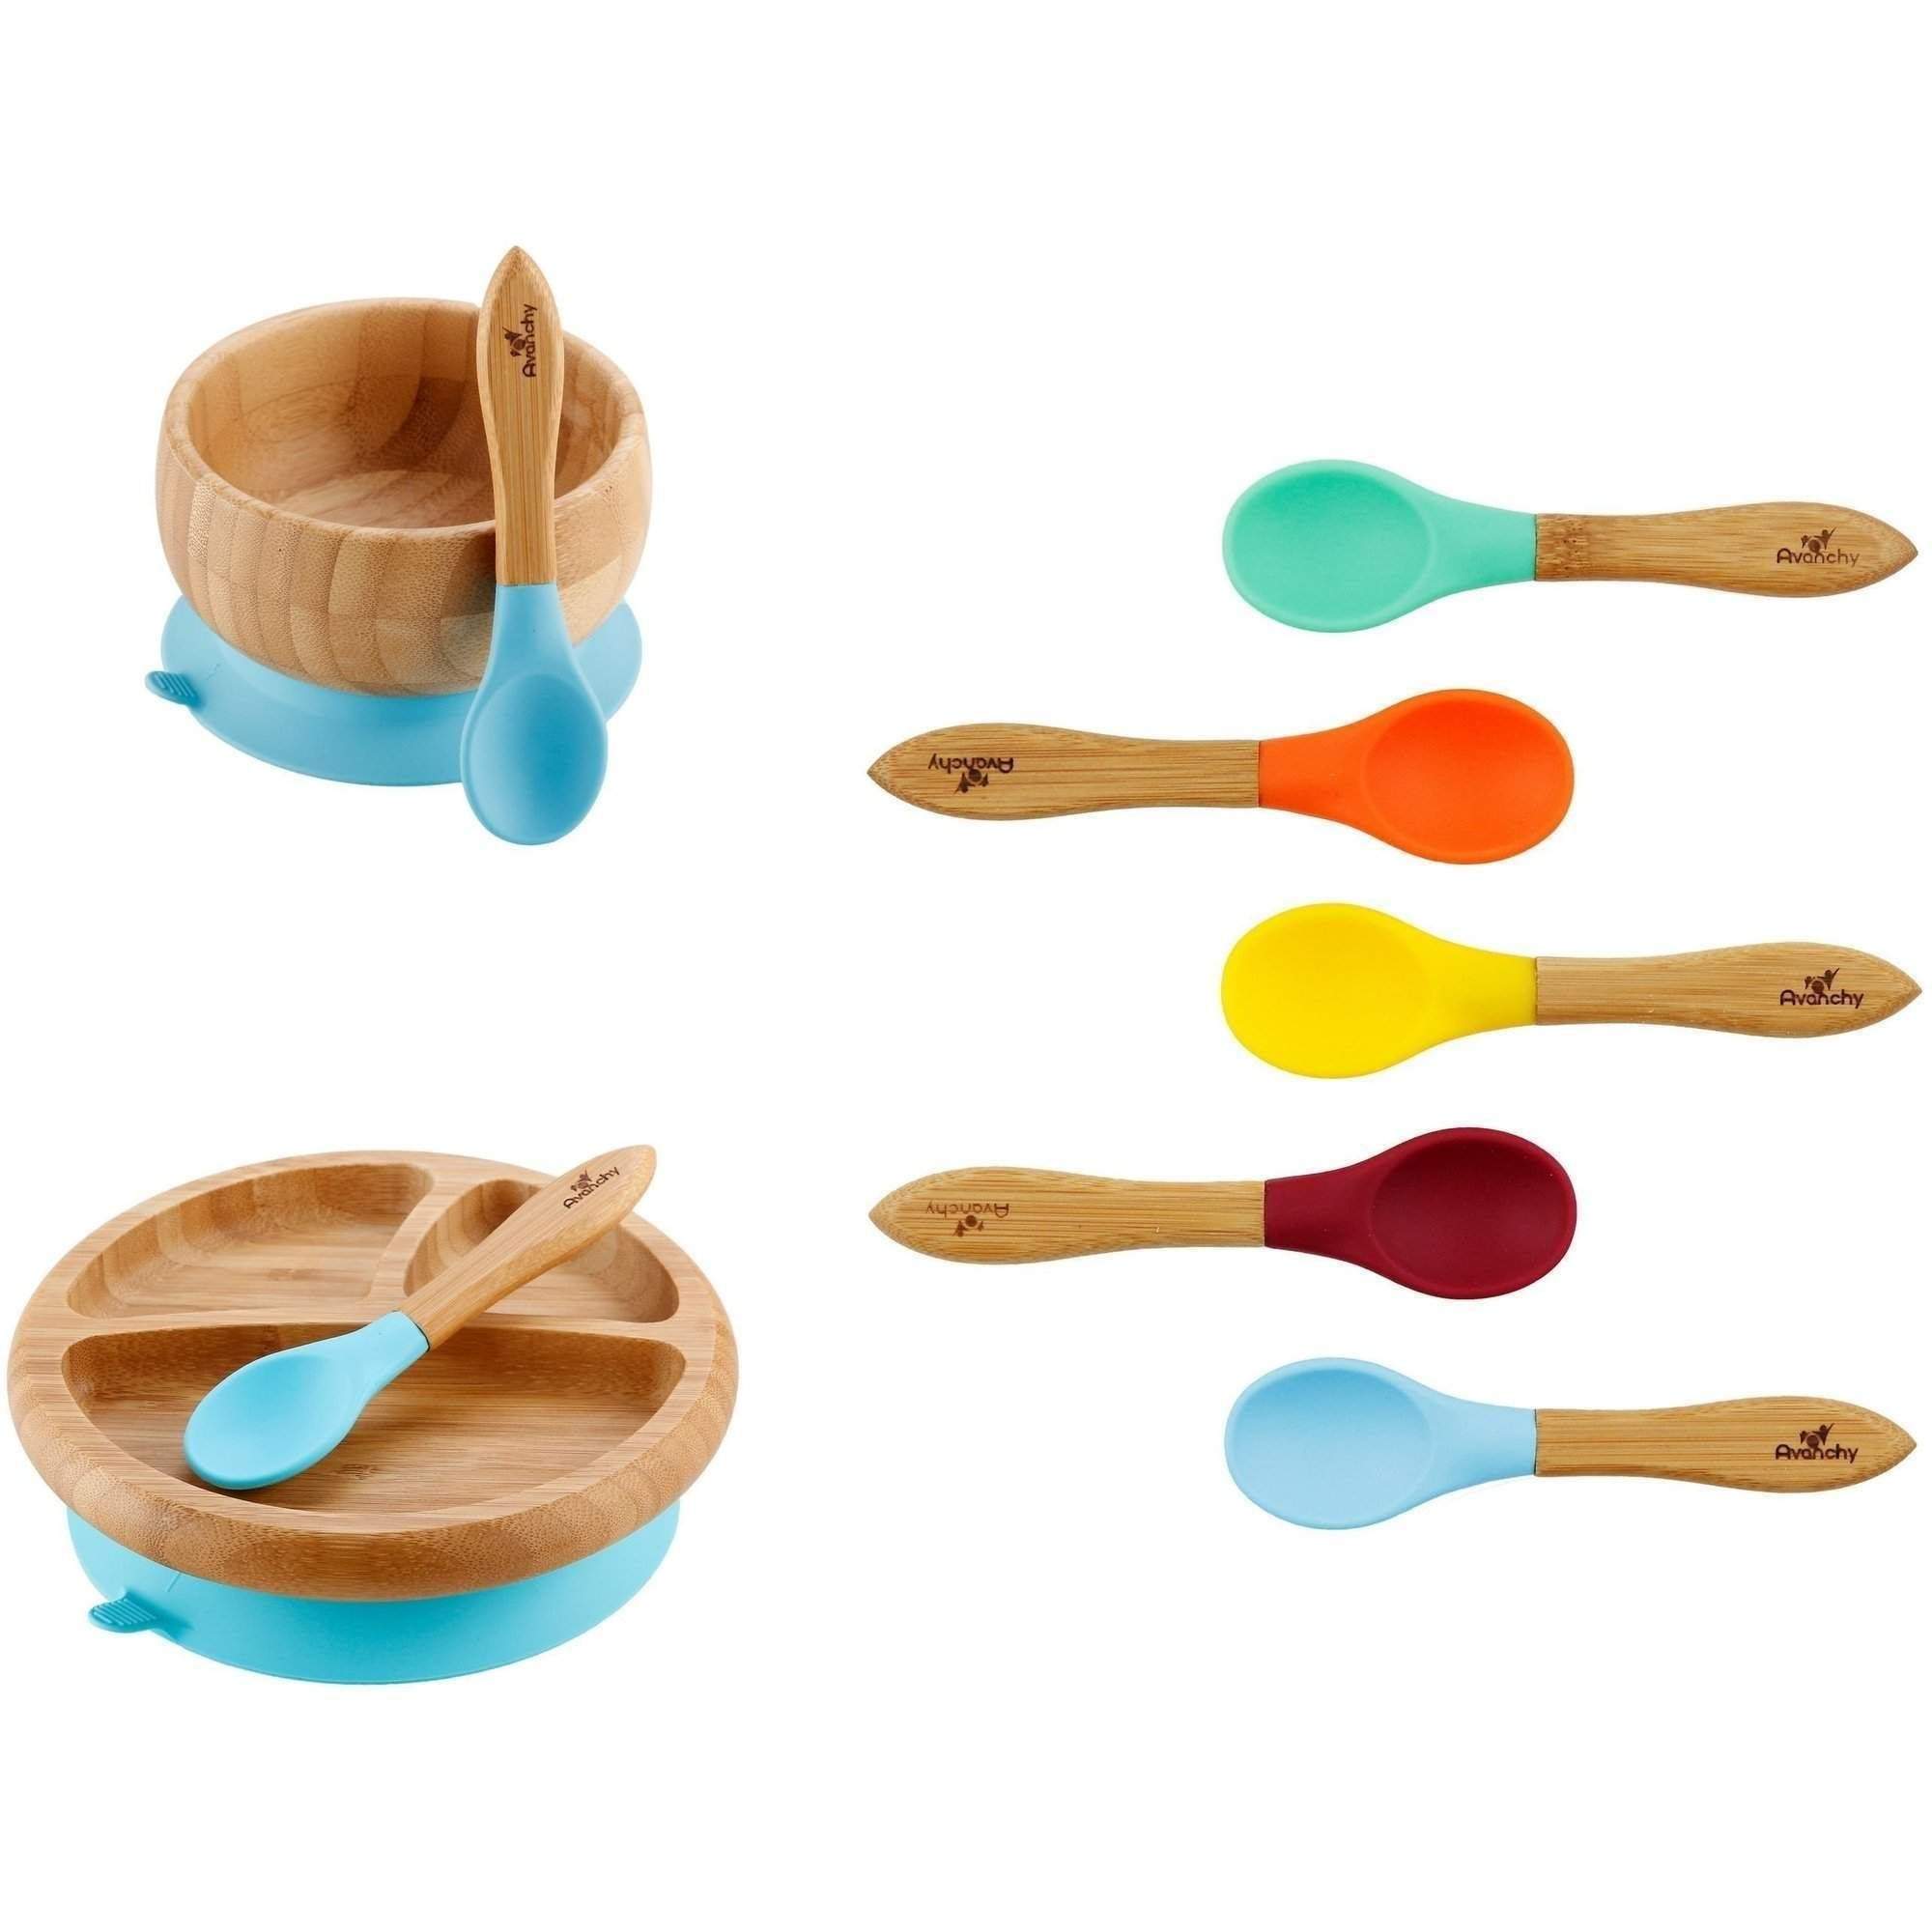 Rainbow Gift Set Blue - Baby Shower, Baby Registry, Home Set & More. Baby Girl, Baby Boy, Unisex. Baby Bowl Set + Baby Plate Set + Assorted Baby Spoons Set. FDA Approved BPA Free